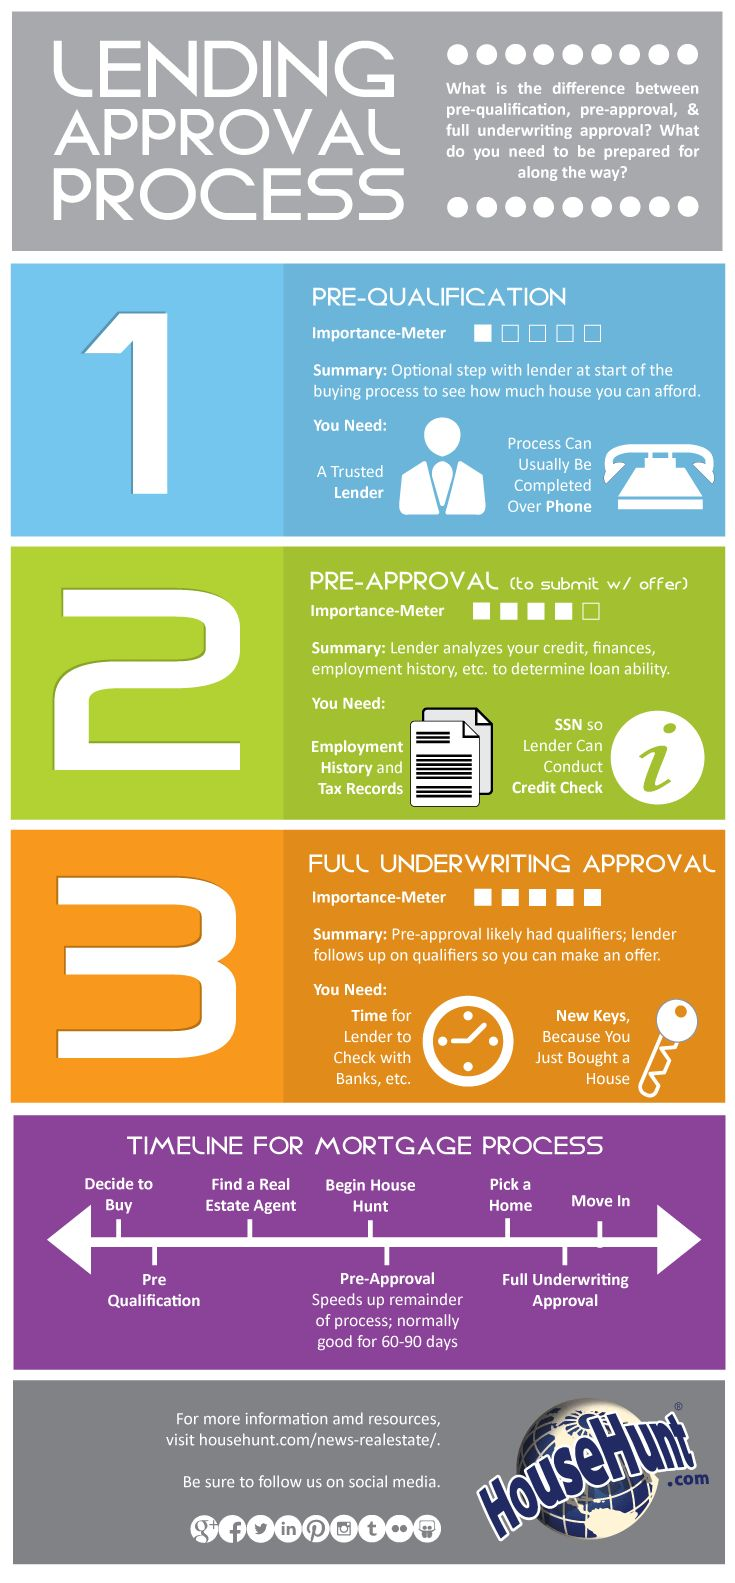 Best Type Of Mortgage Loan For First Time Home Buyers